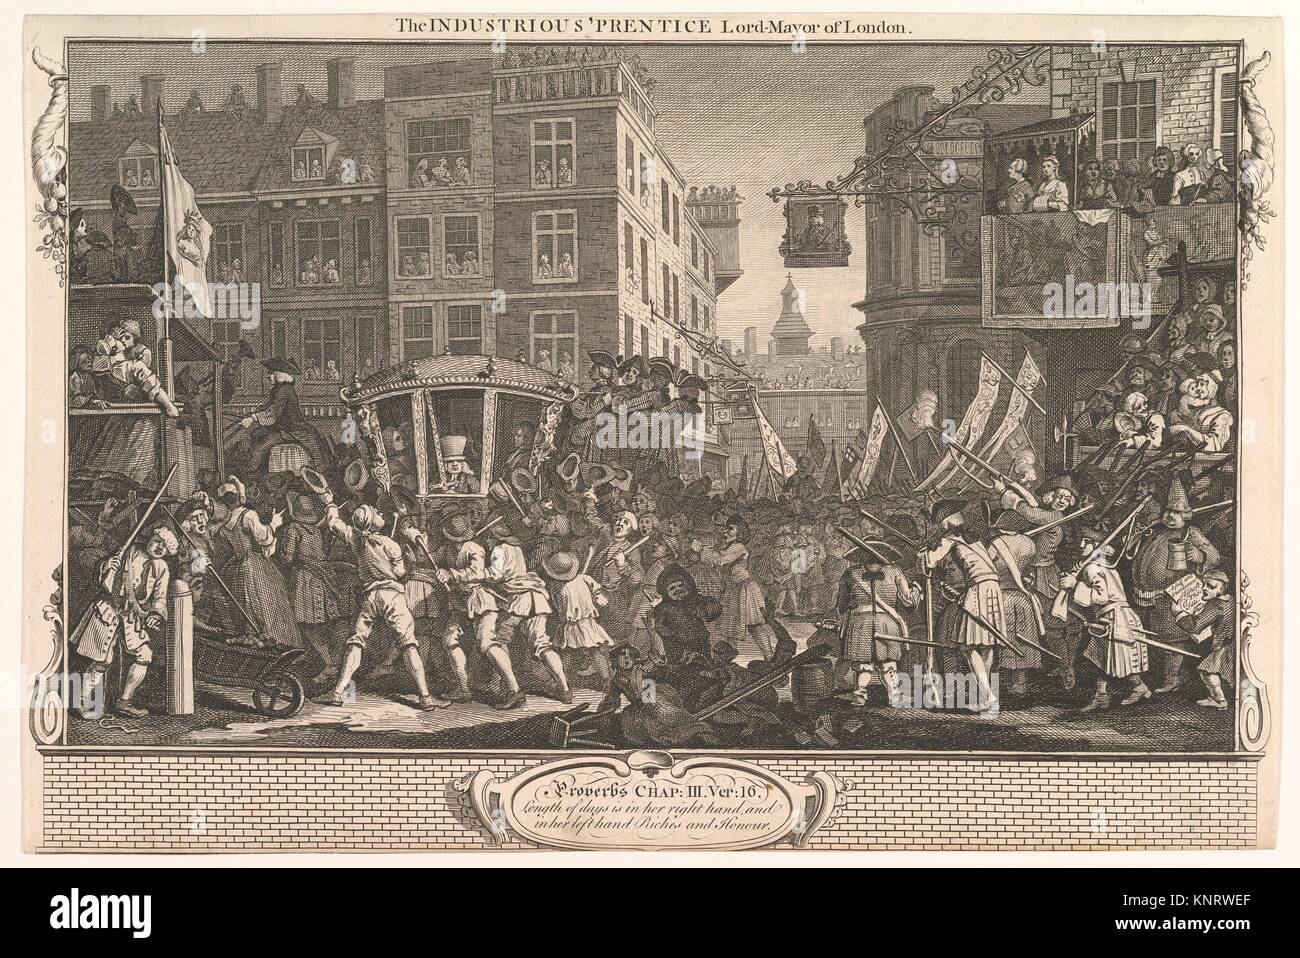 The Industrious 'Prentice Lord Mayor of London (Industry and Idleness, plate12). Artist: William Hogarth (British, - Stock Image